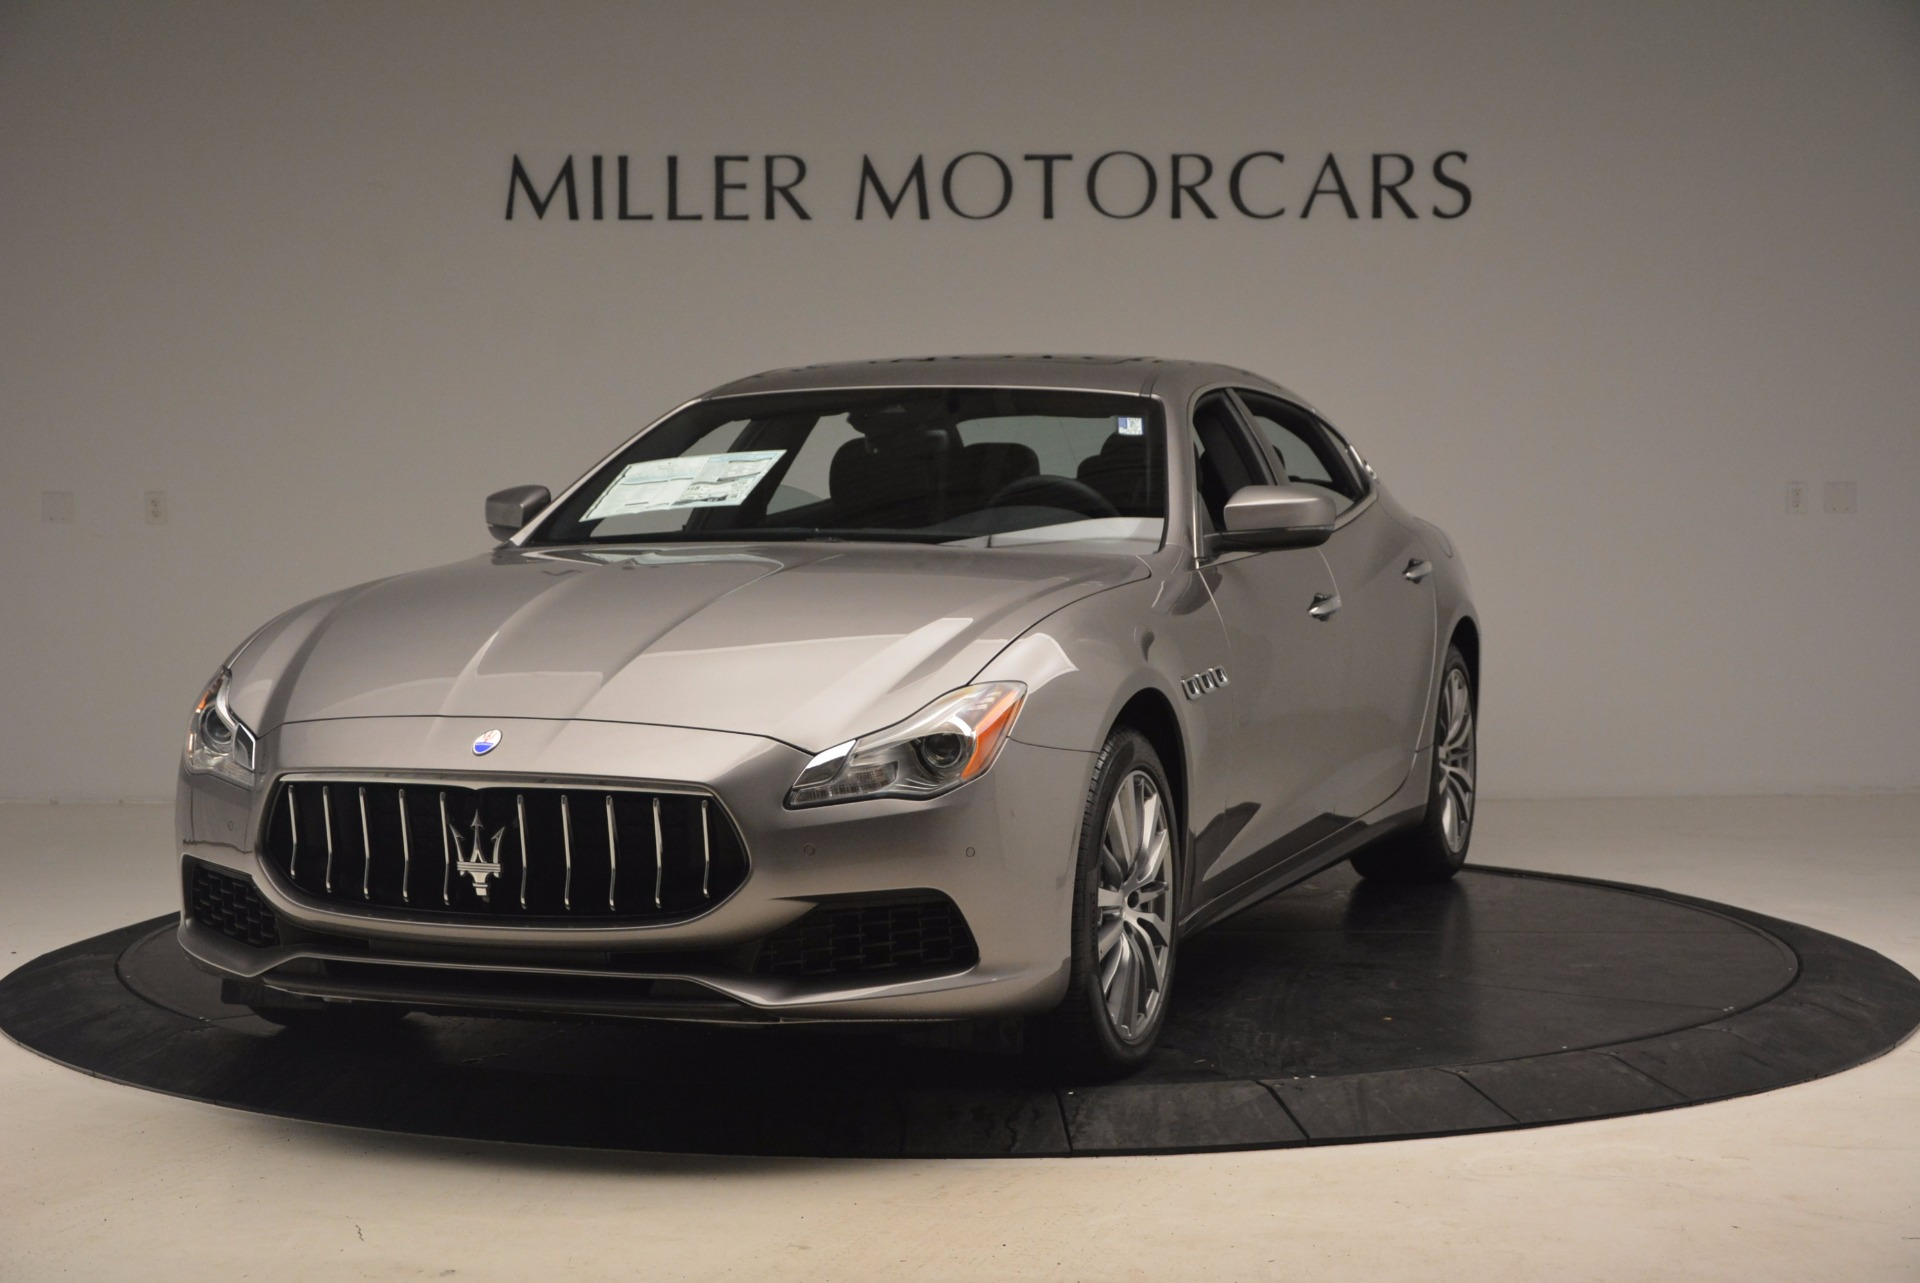 New 2017 Maserati Quattroporte SQ4 for sale Sold at Pagani of Greenwich in Greenwich CT 06830 1